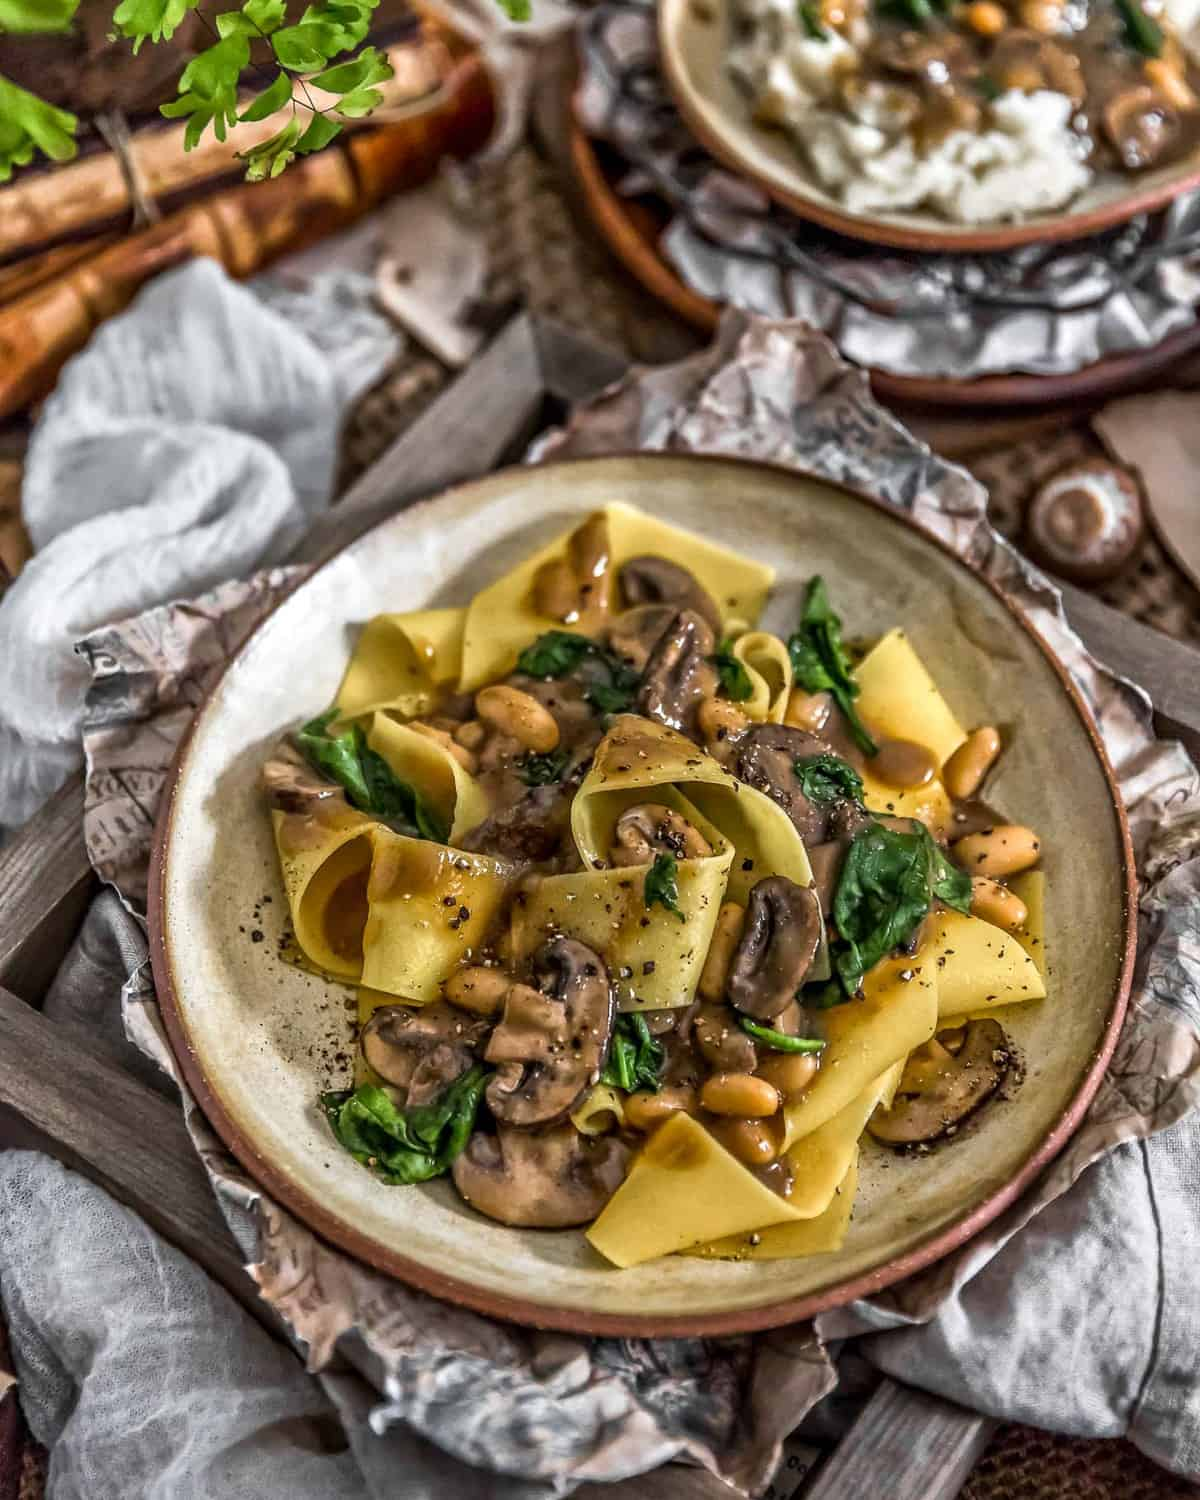 Vegan Mushroom Spinach Stroganoff with Pasta